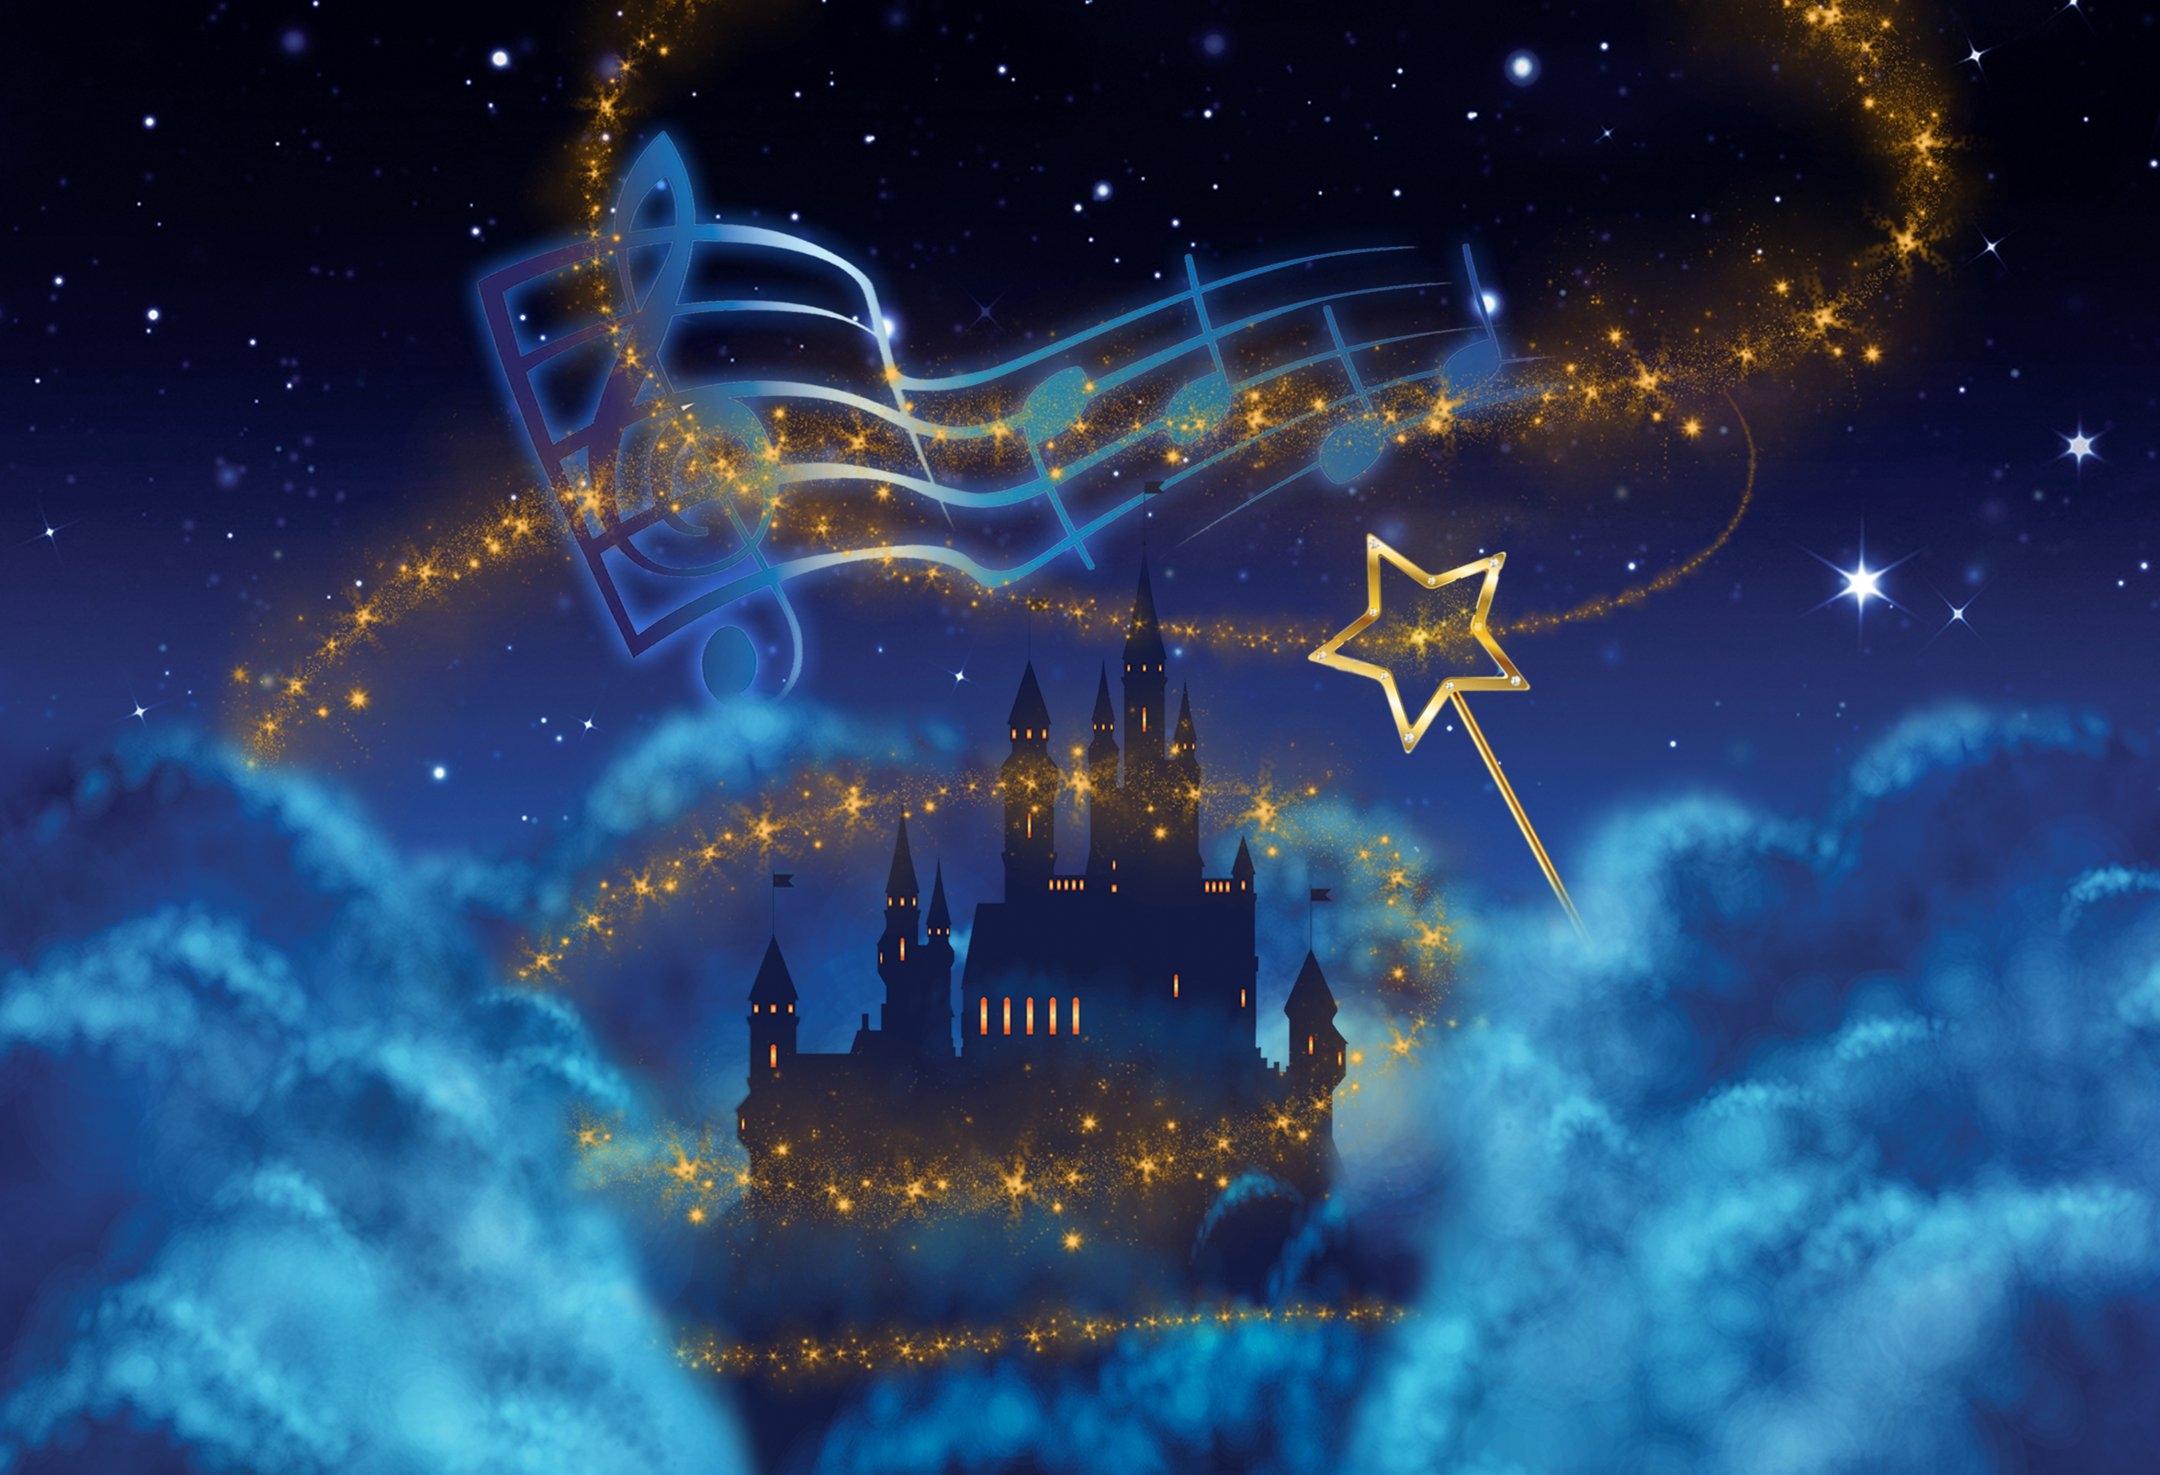 Wish Upon A Song